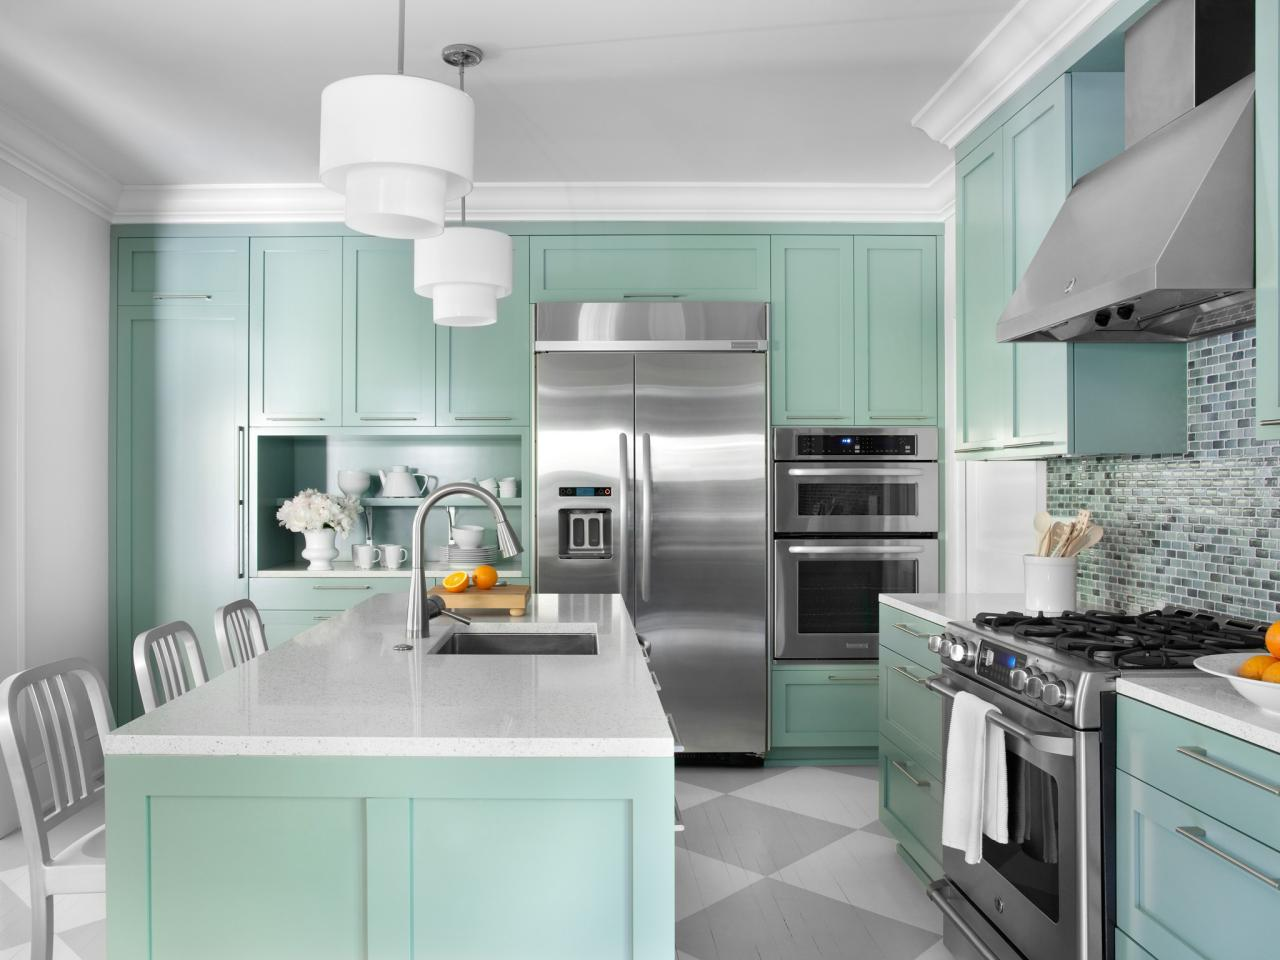 beautiful Kitchen Cabinet Designs And Colors #3: Color Ideas for Painting Kitchen Cabinets